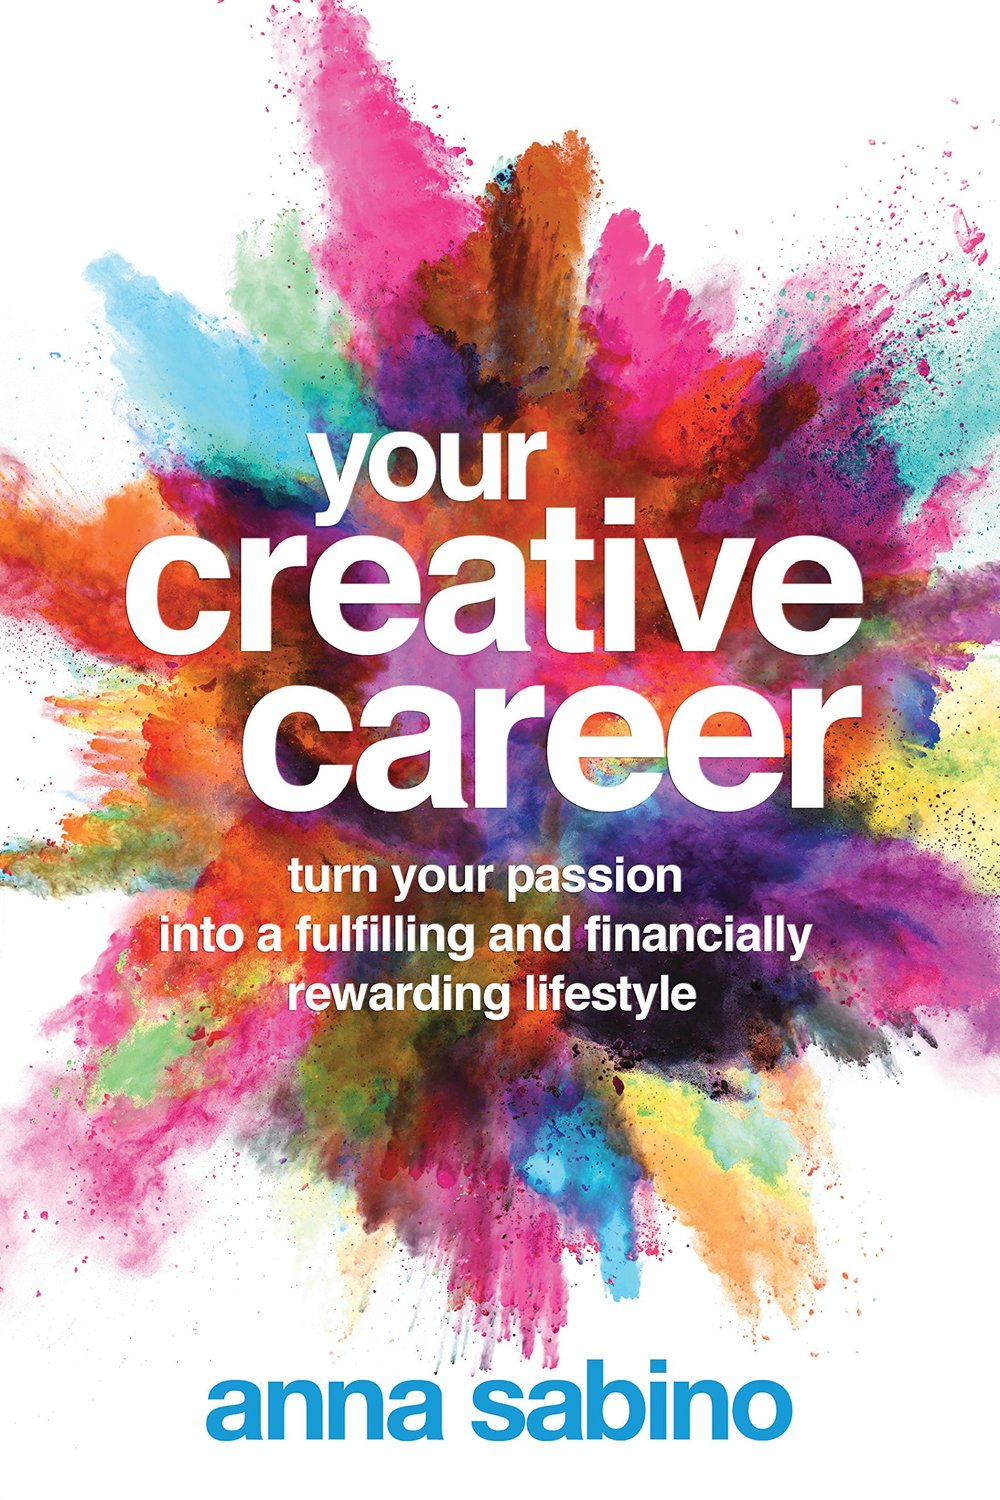 Your Creative Career by Anna Sabino